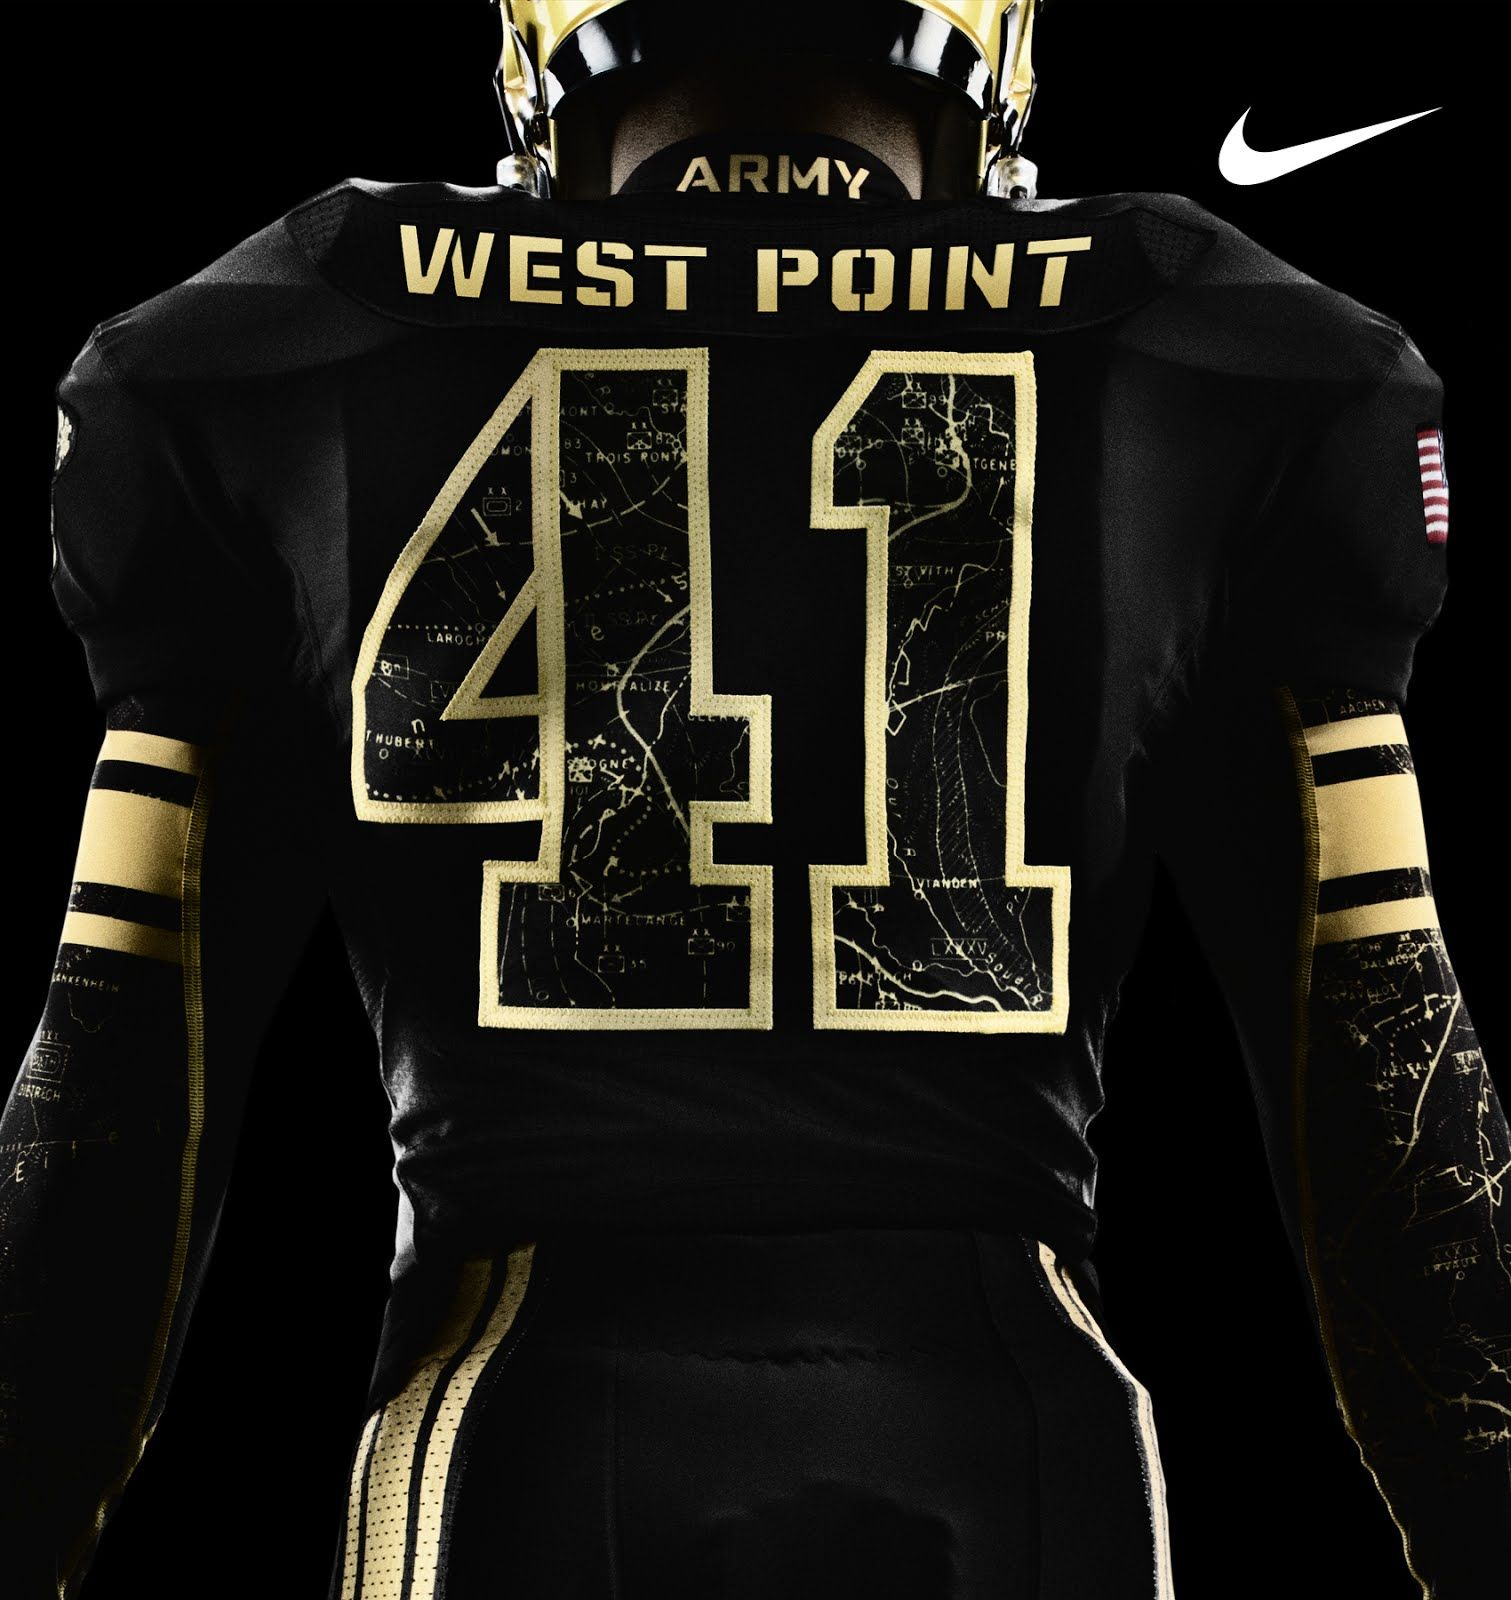 Army Black Knights Wallpaper Army Football Navy Football Football Uniforms